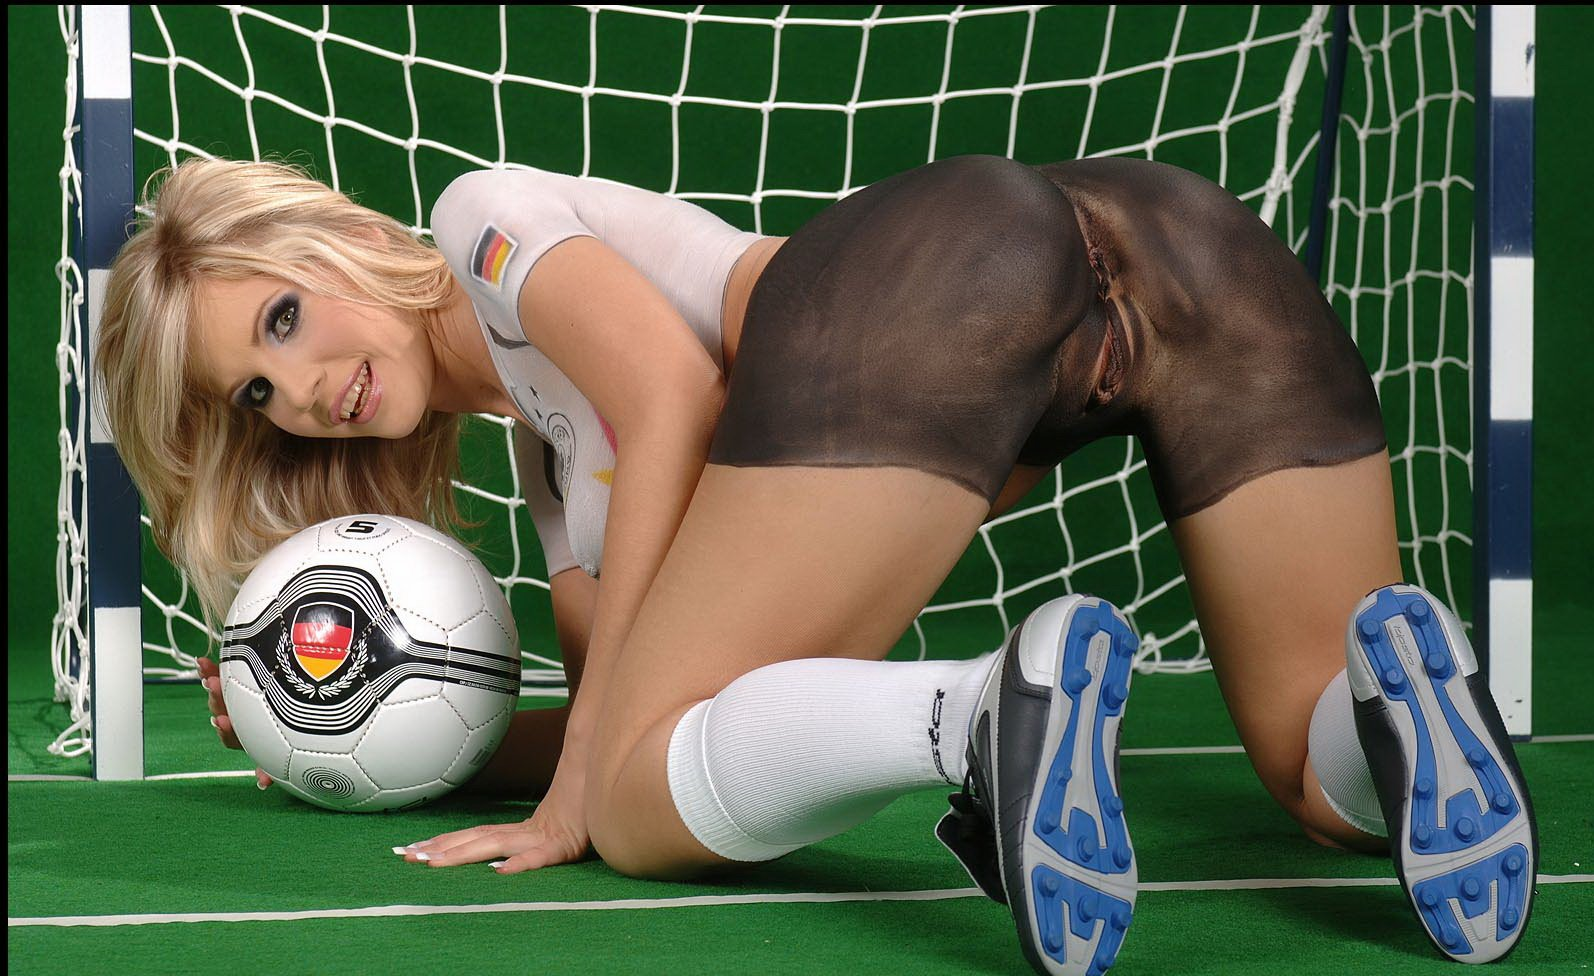 Four sexy pornstars competing in a game of football for a hard dick